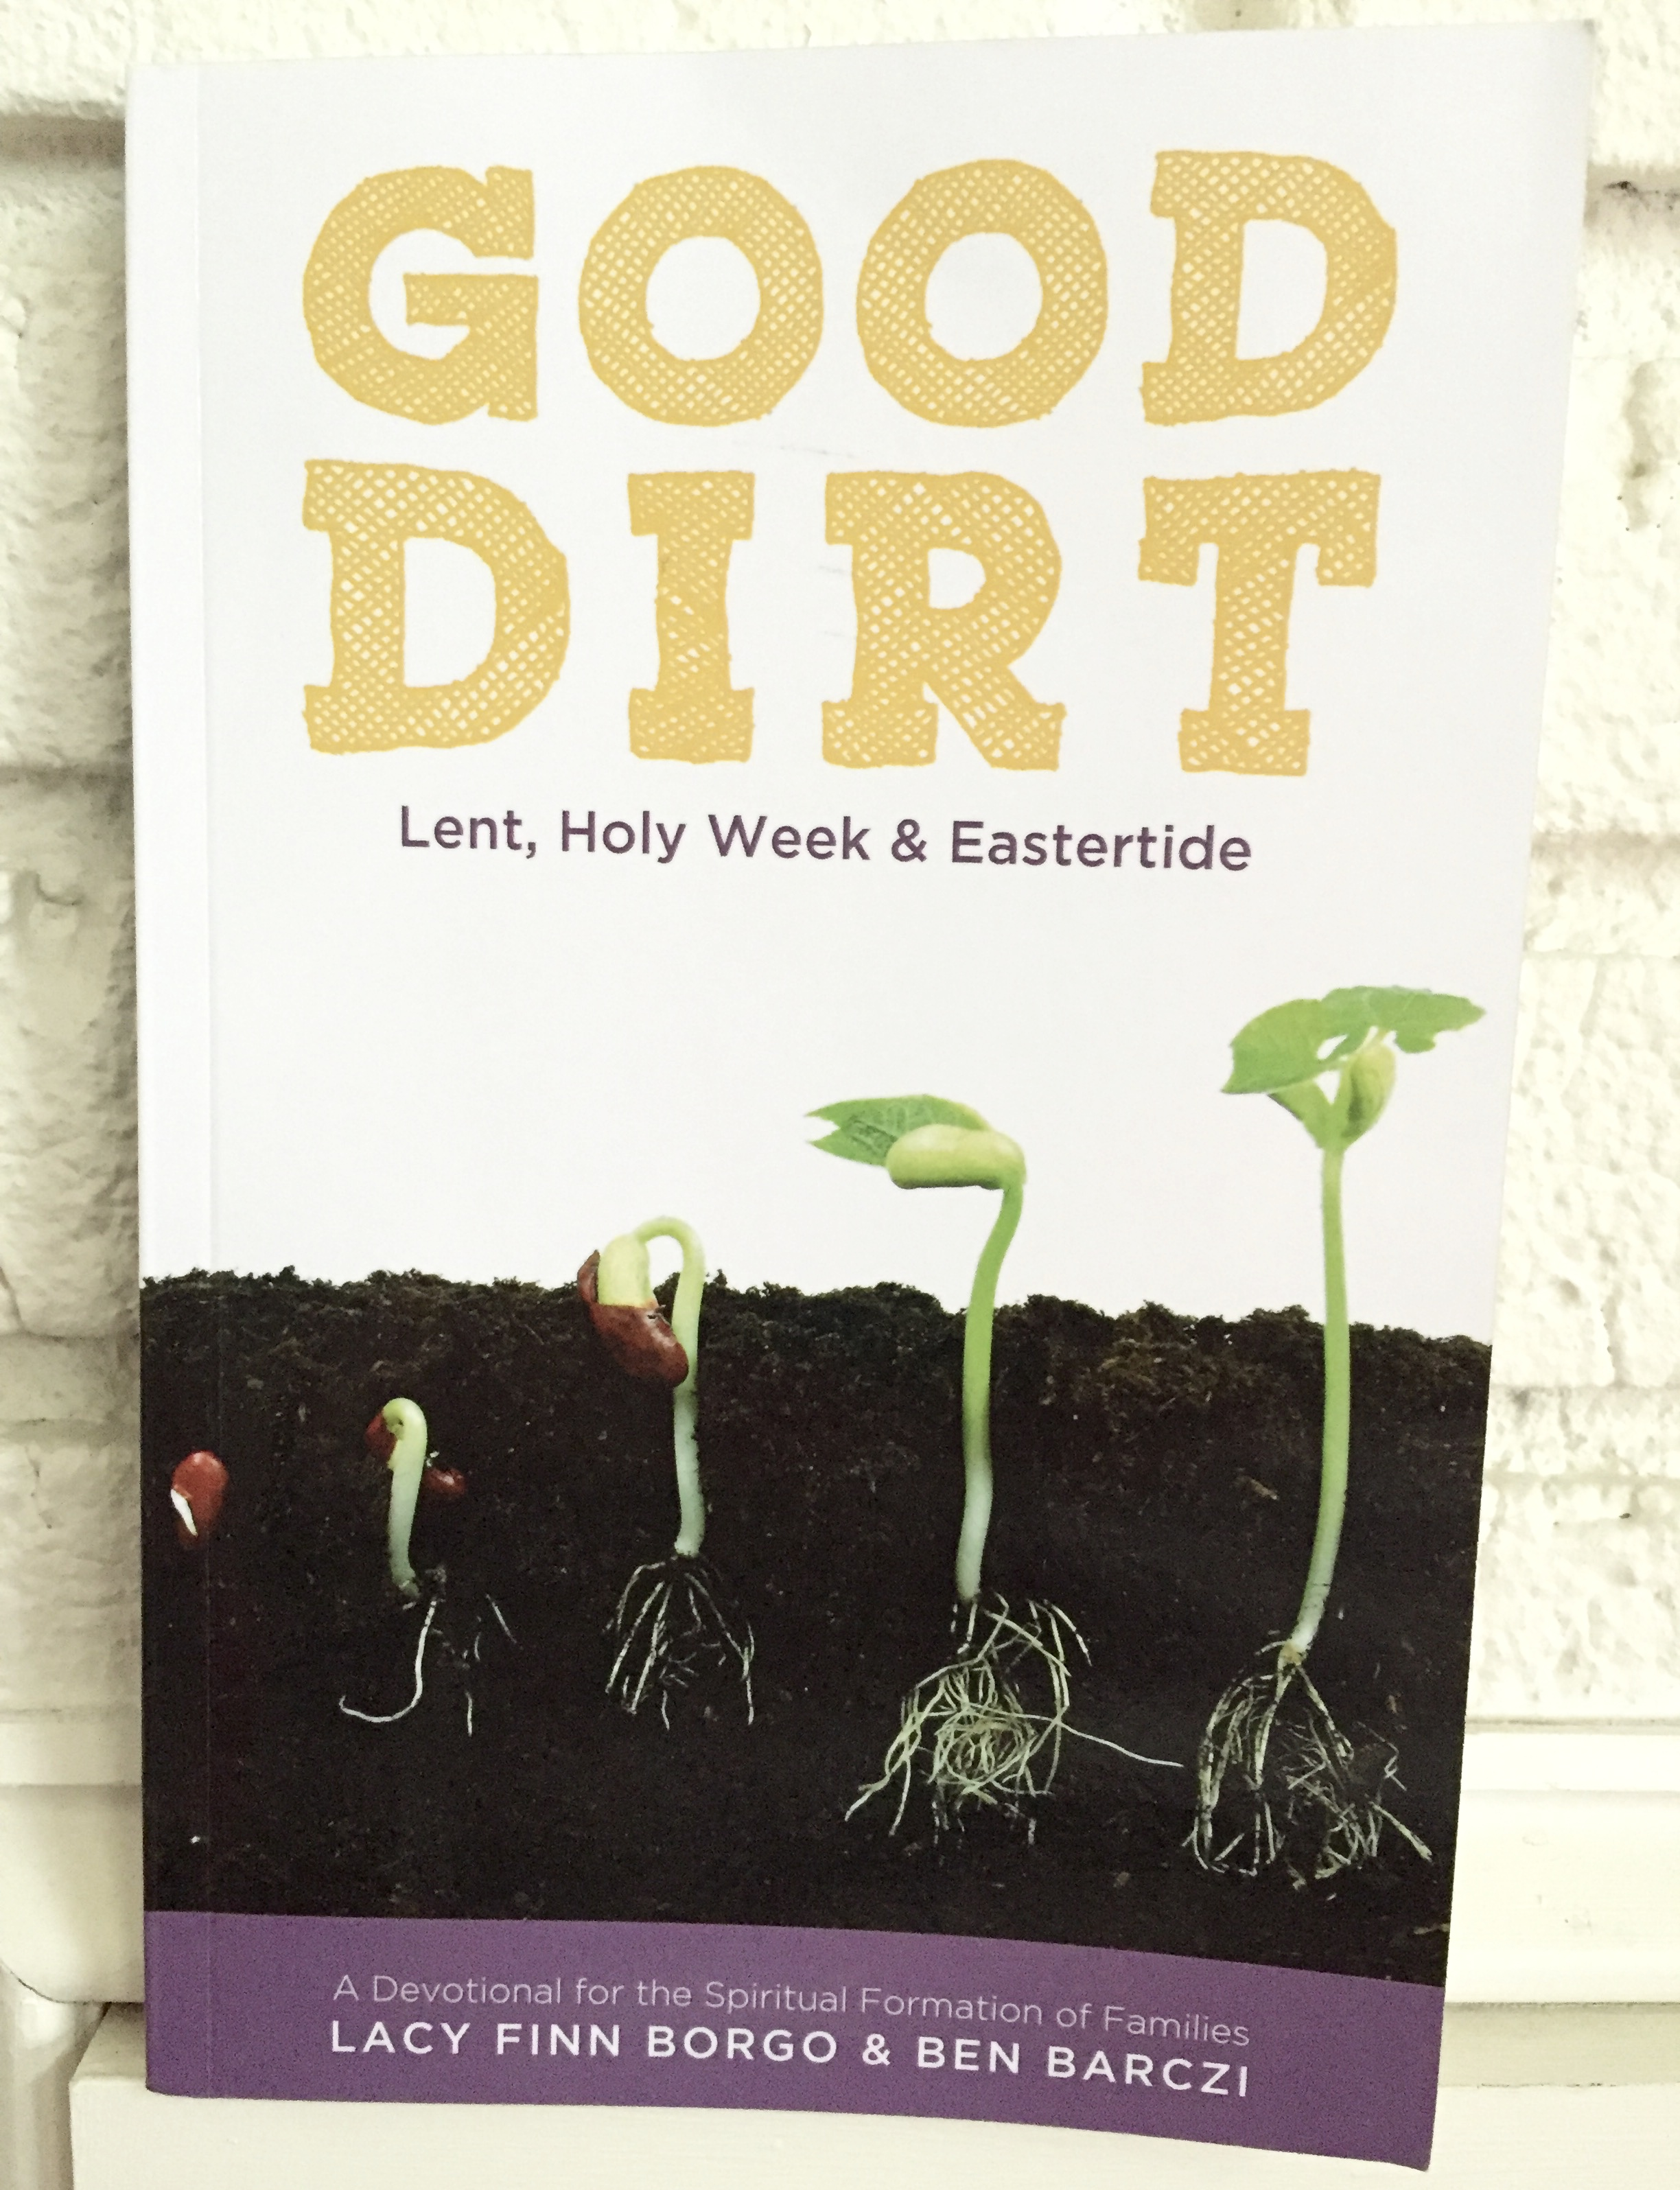 Good Dirt: Lent, Holy Week & Eastertide, A Devotional for the Spiritual Formation of Families